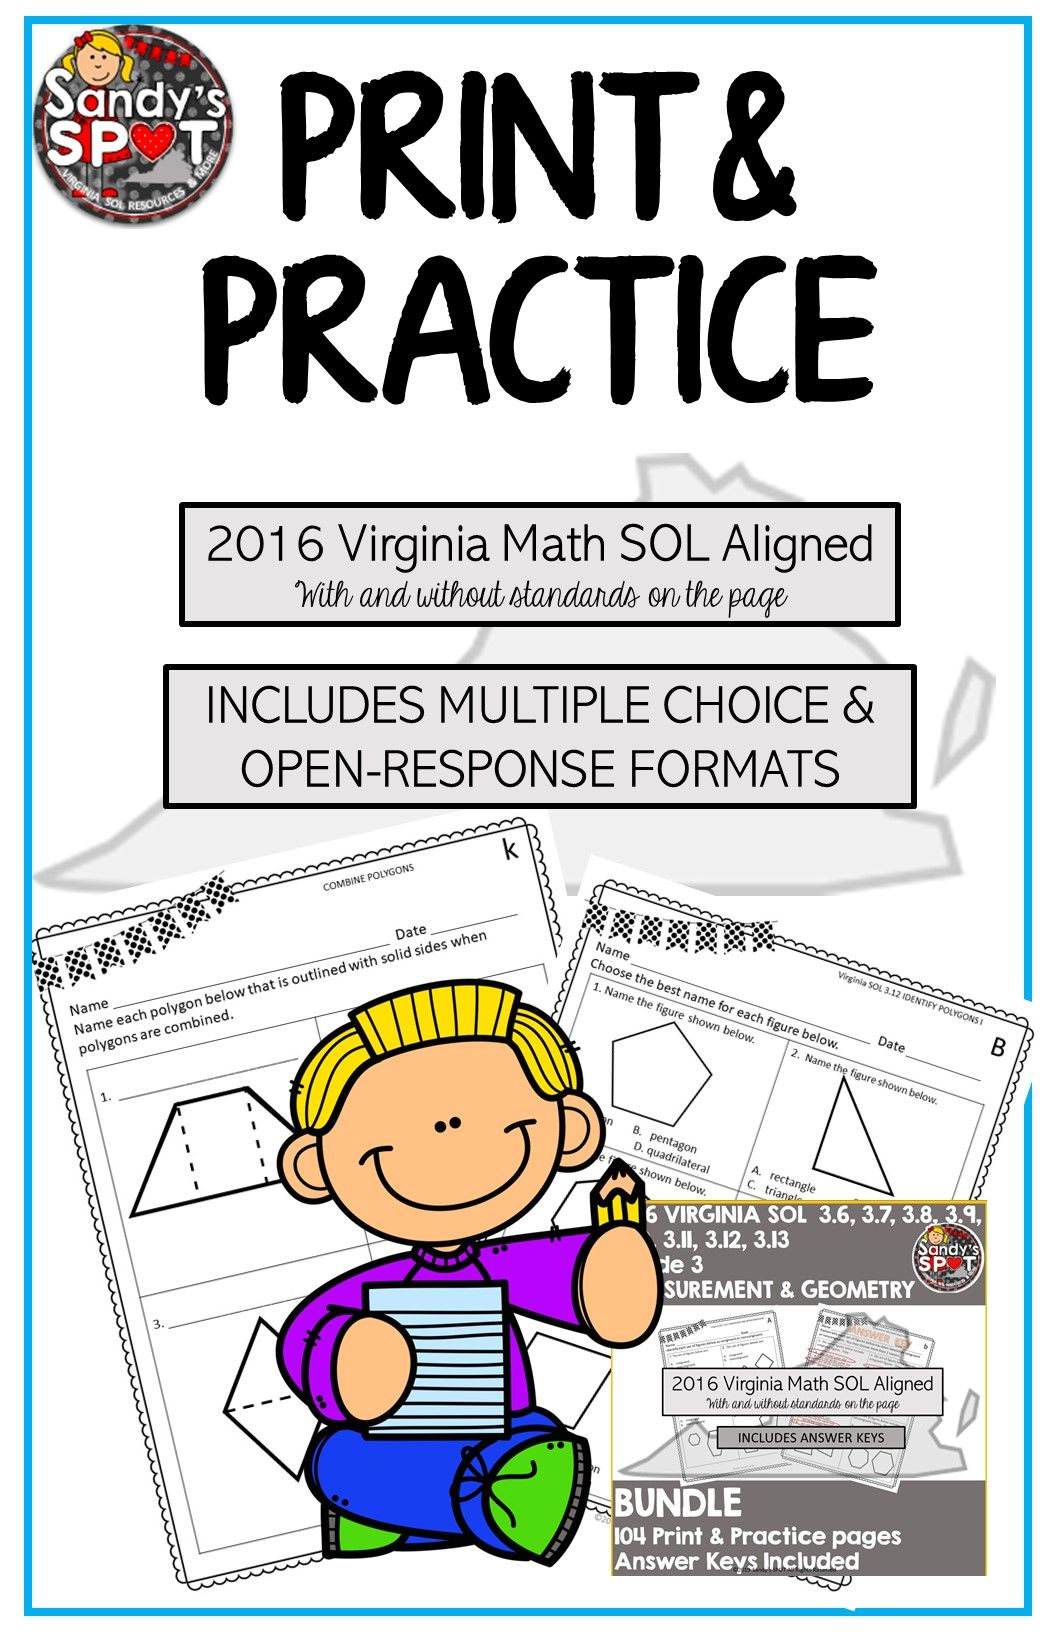 Ready To Print And Practice Virginia Sol Aligned